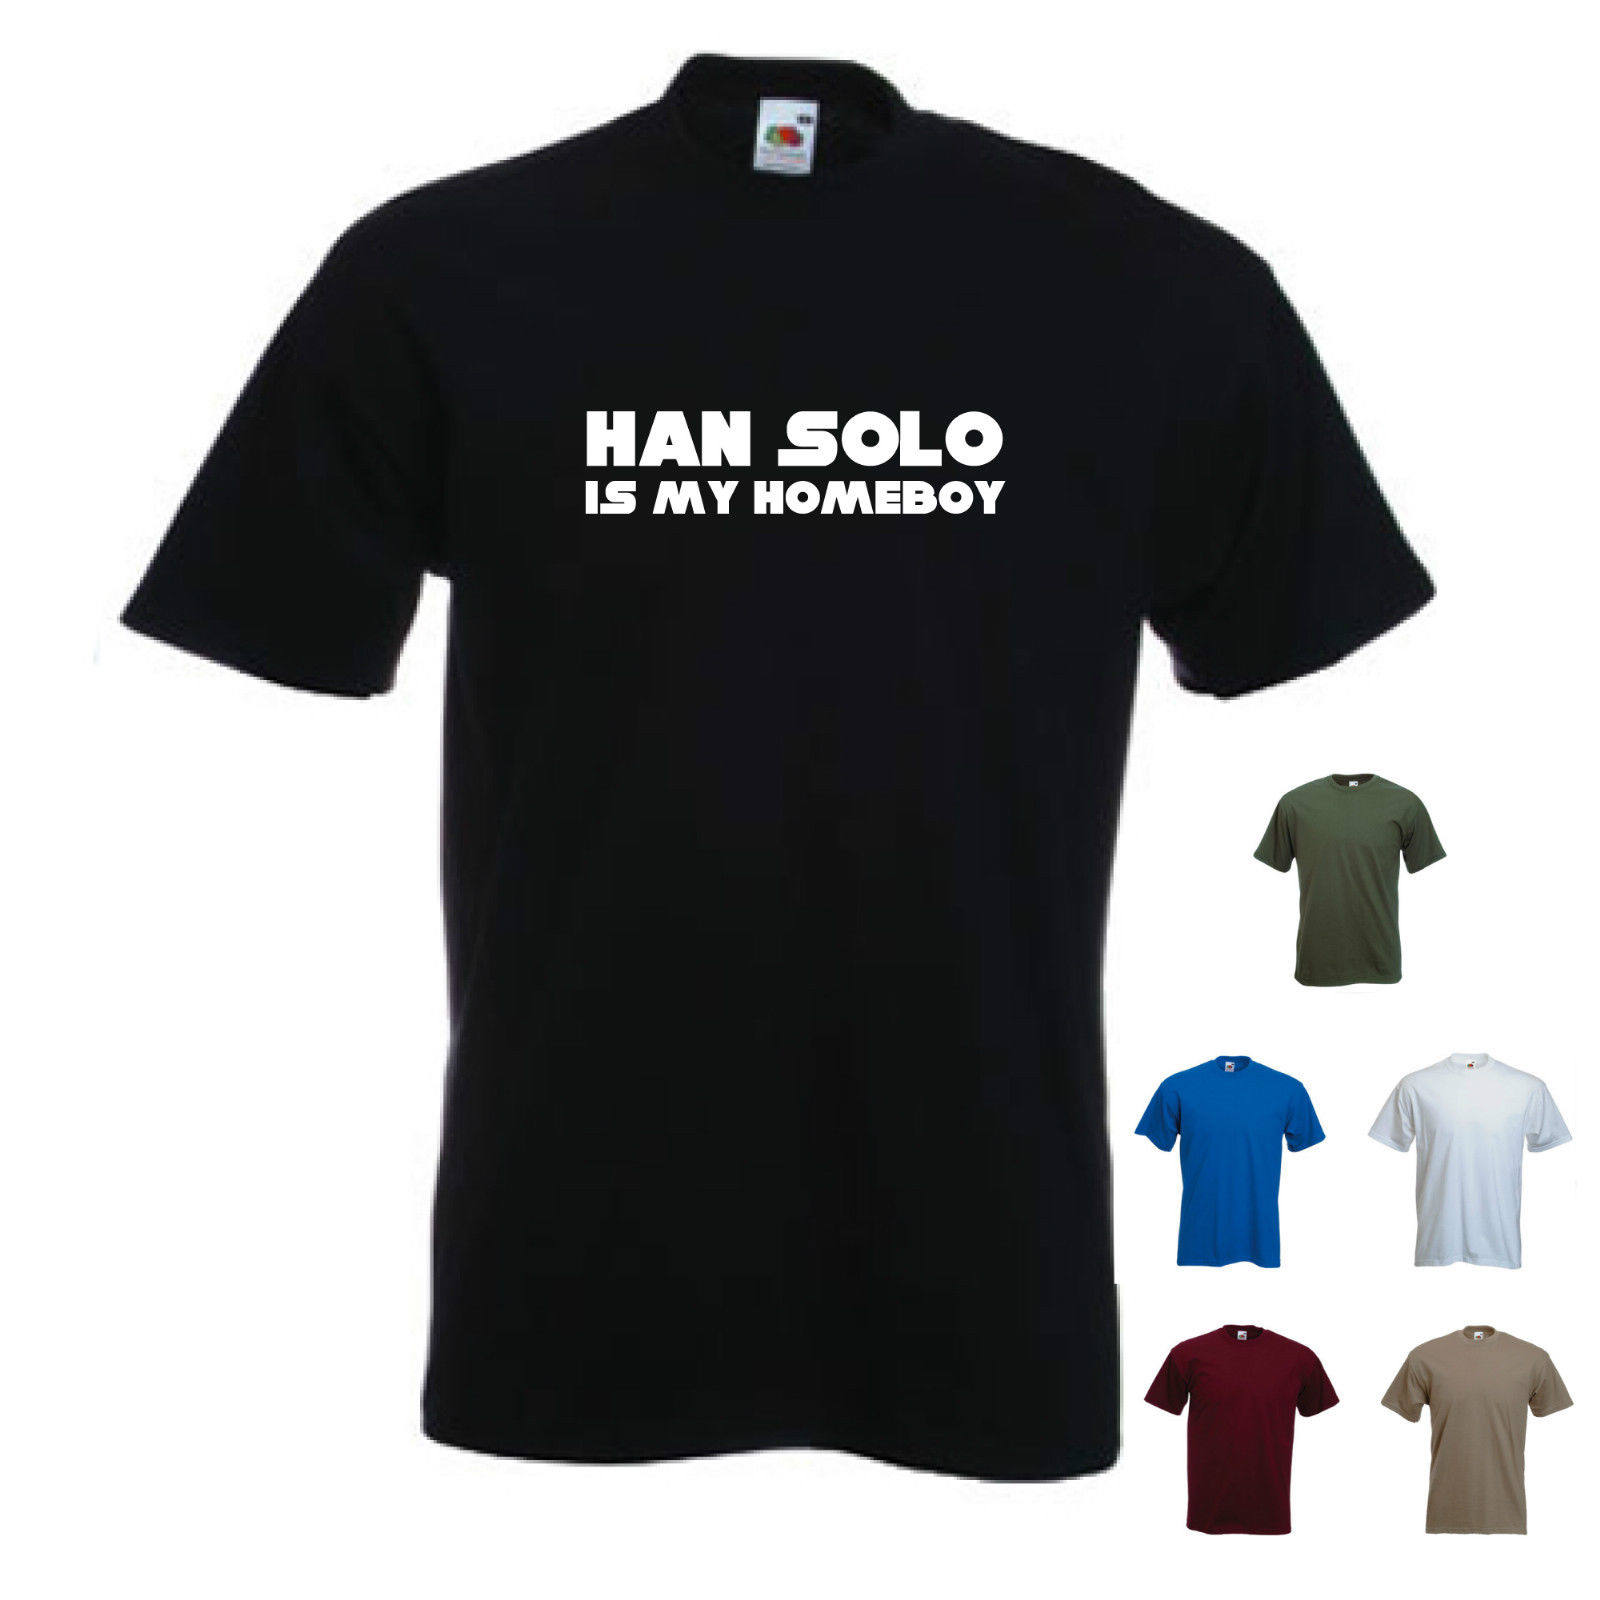 39 Han Solo is my Homeboy 39 Funny Star wars Jedi T shirt S XXL Free shipping Harajuku Tops Classic Unique T Shirt in T Shirts from Men 39 s Clothing